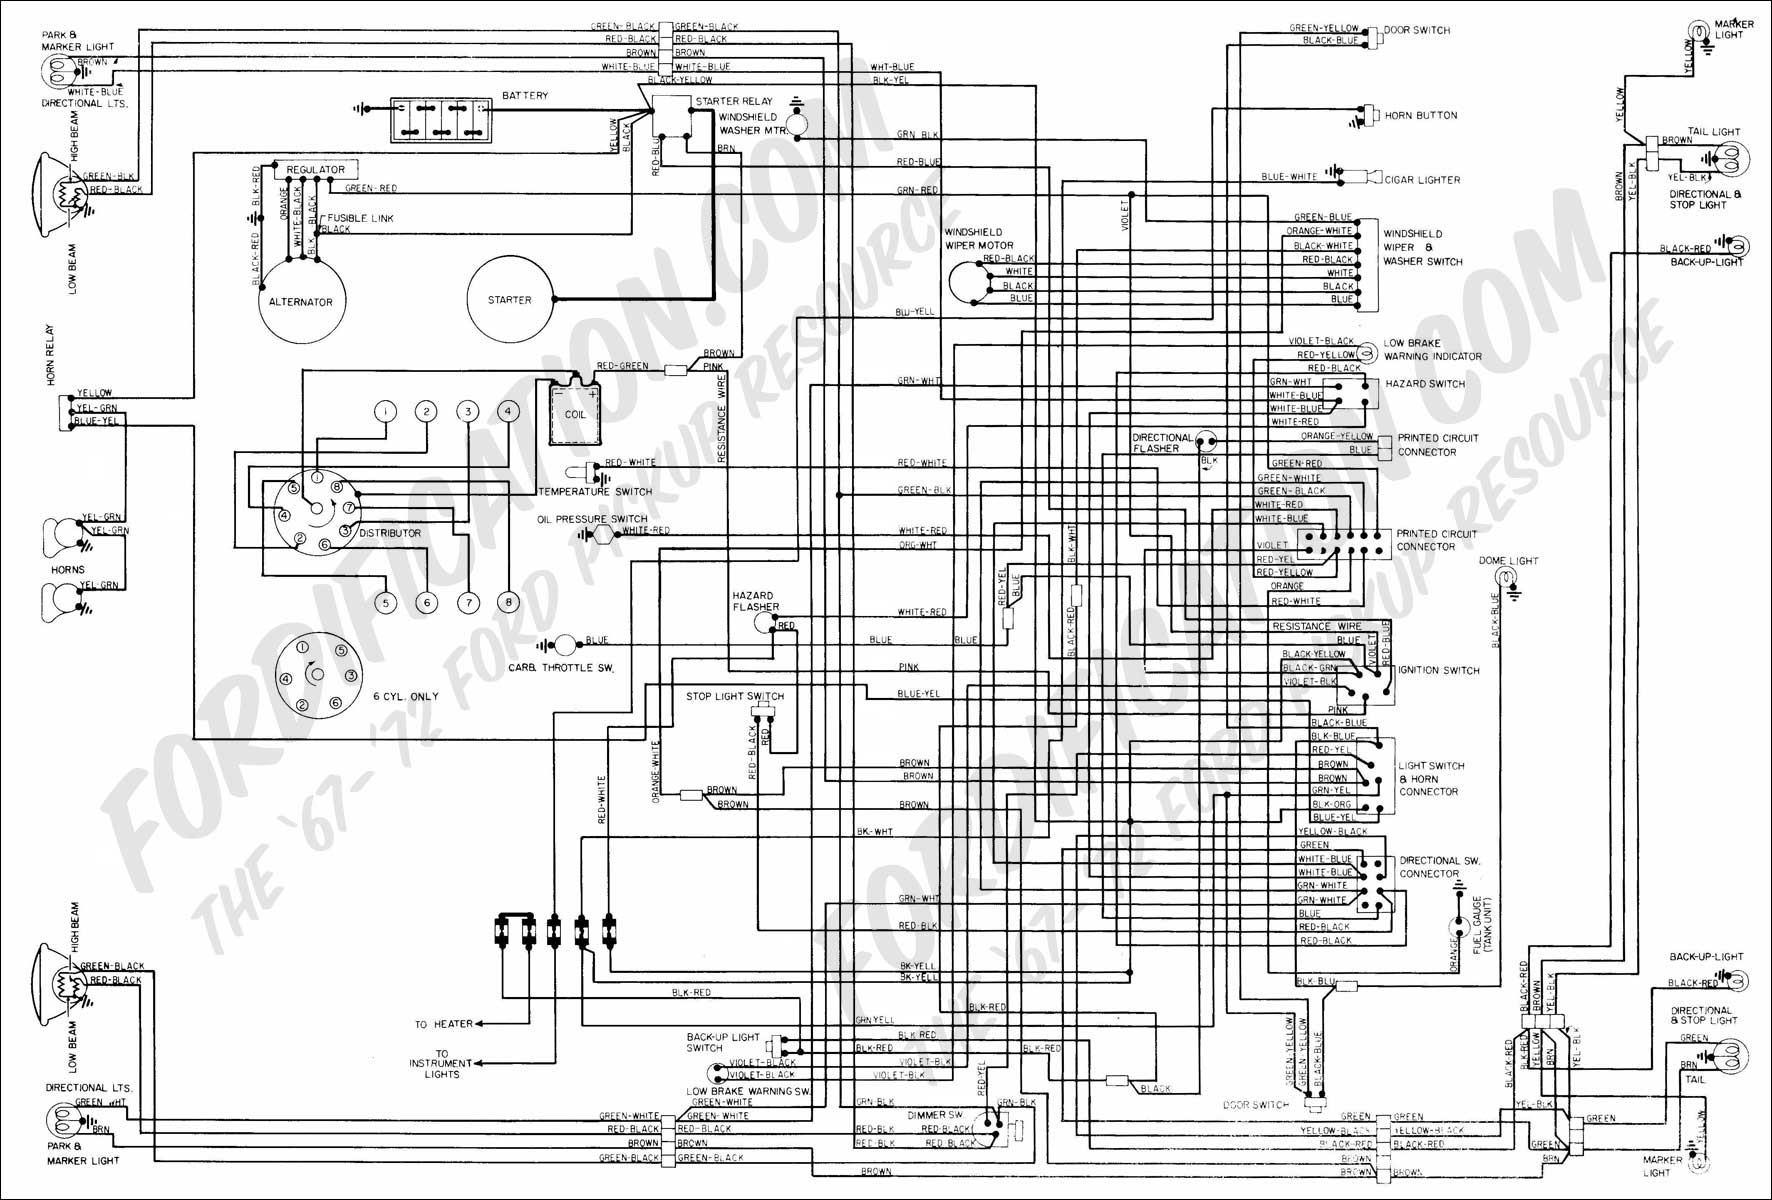 wiring diagram 72_quick 2002 ford f250 wiring diagram efcaviation com 1999 ford f350 wiring diagram at gsmportal.co